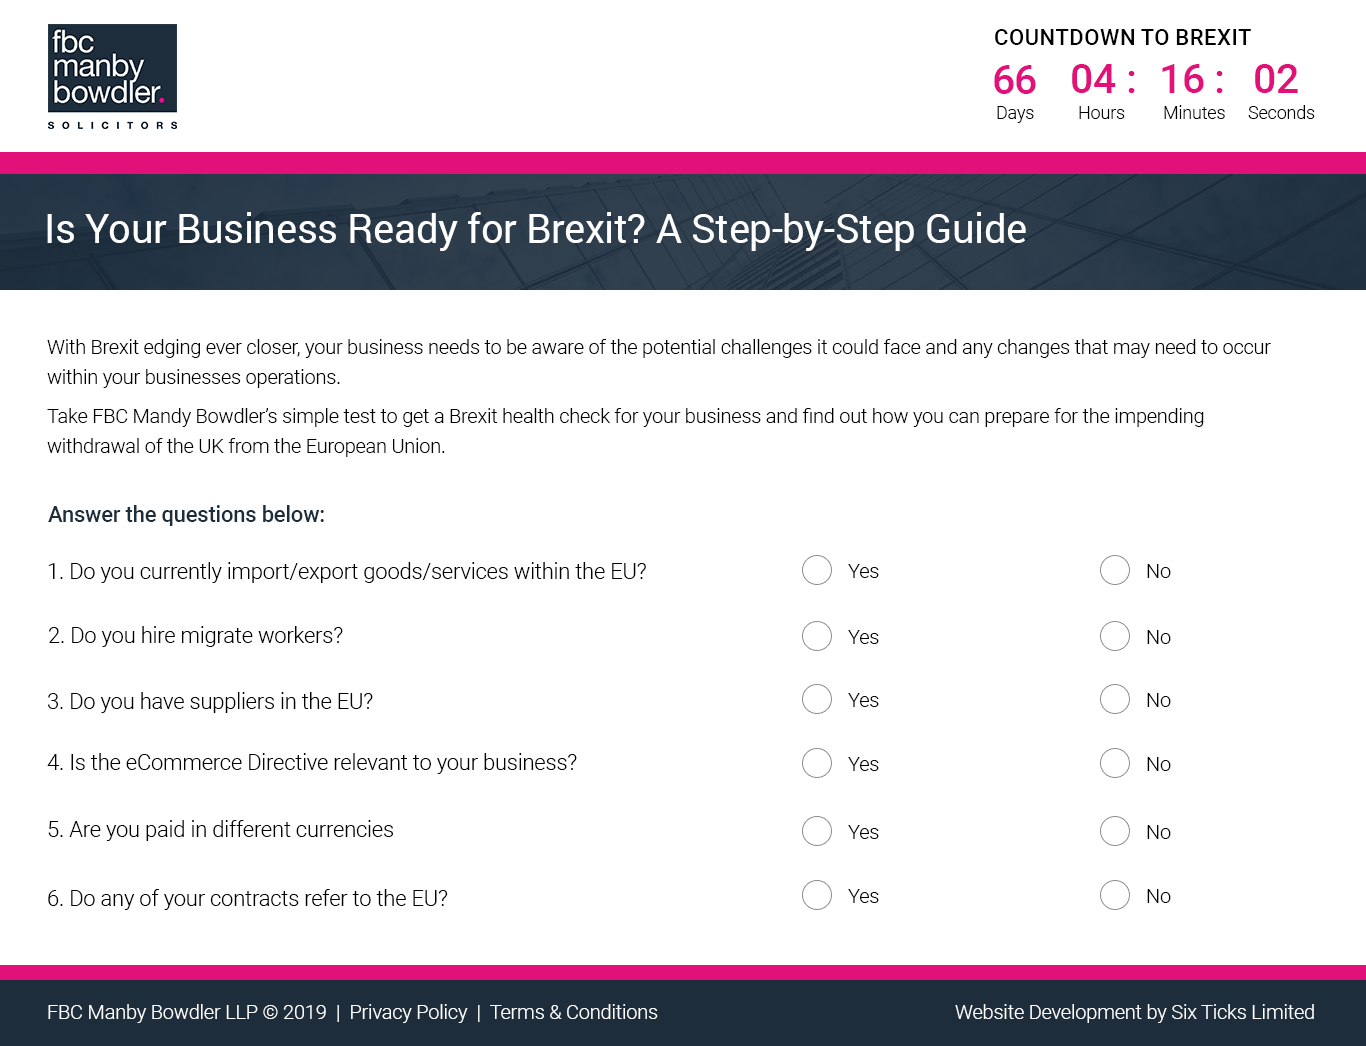 Six Ticks Features Help FBC Manby Bowdler Clients to Brexitproof their Businesses